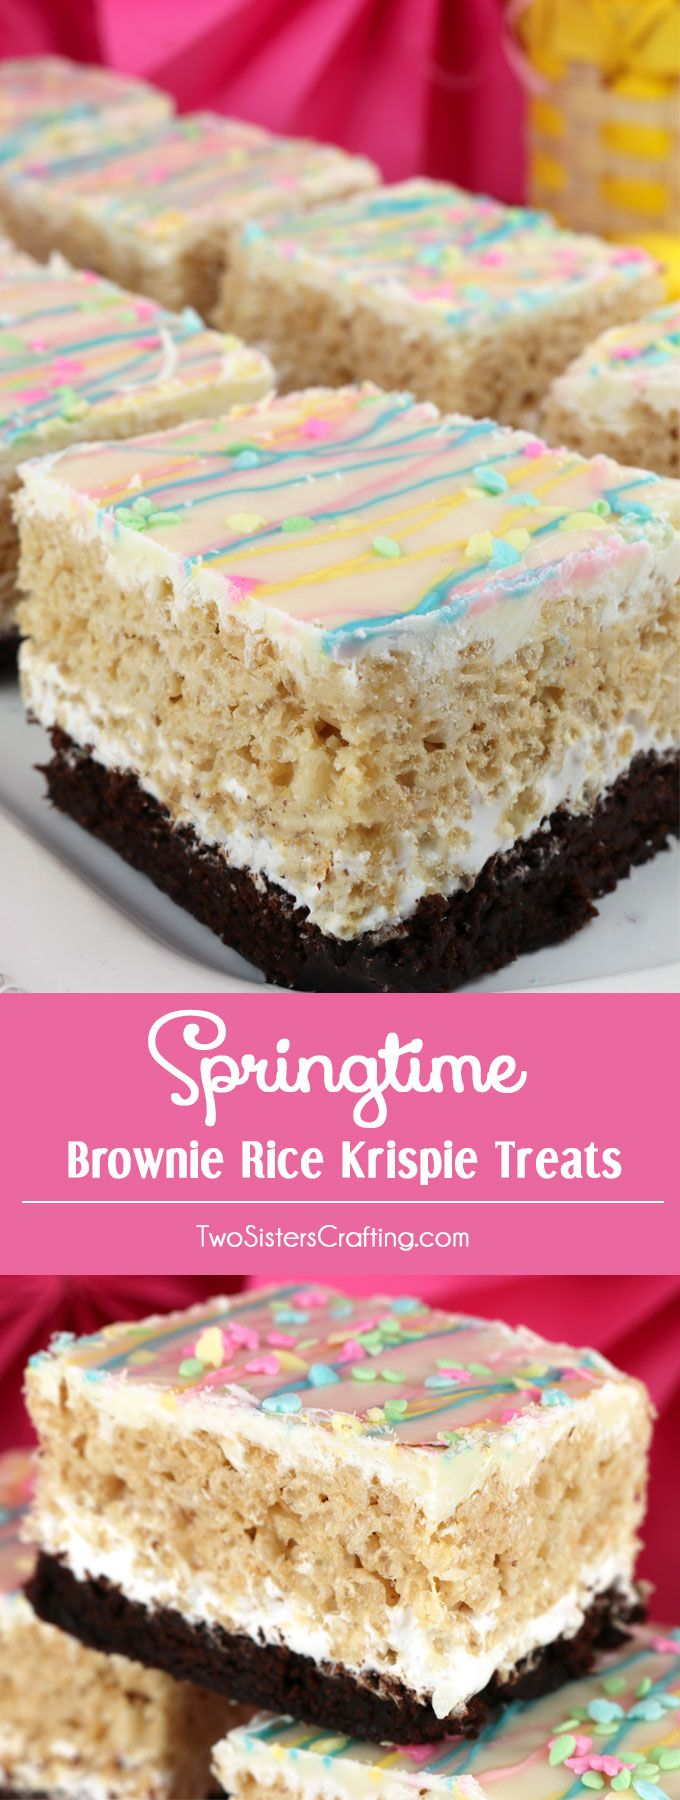 Gotta make dairy free tho Springtime Brownie Rice Krispie Treats - your family will love these beautiful and yummy dessert bars featuring Brownies and Rice Krispie Treats. These colorful Easter Desserts will be a fun addition to your Spring baking list. These pretty and yummy Rice Krispie Treats are perfect for a Easter Brunch, Easter Dinner or a family get-together. Pin this great Easter treat for later and follow us for more fun Easter Food Ideas.